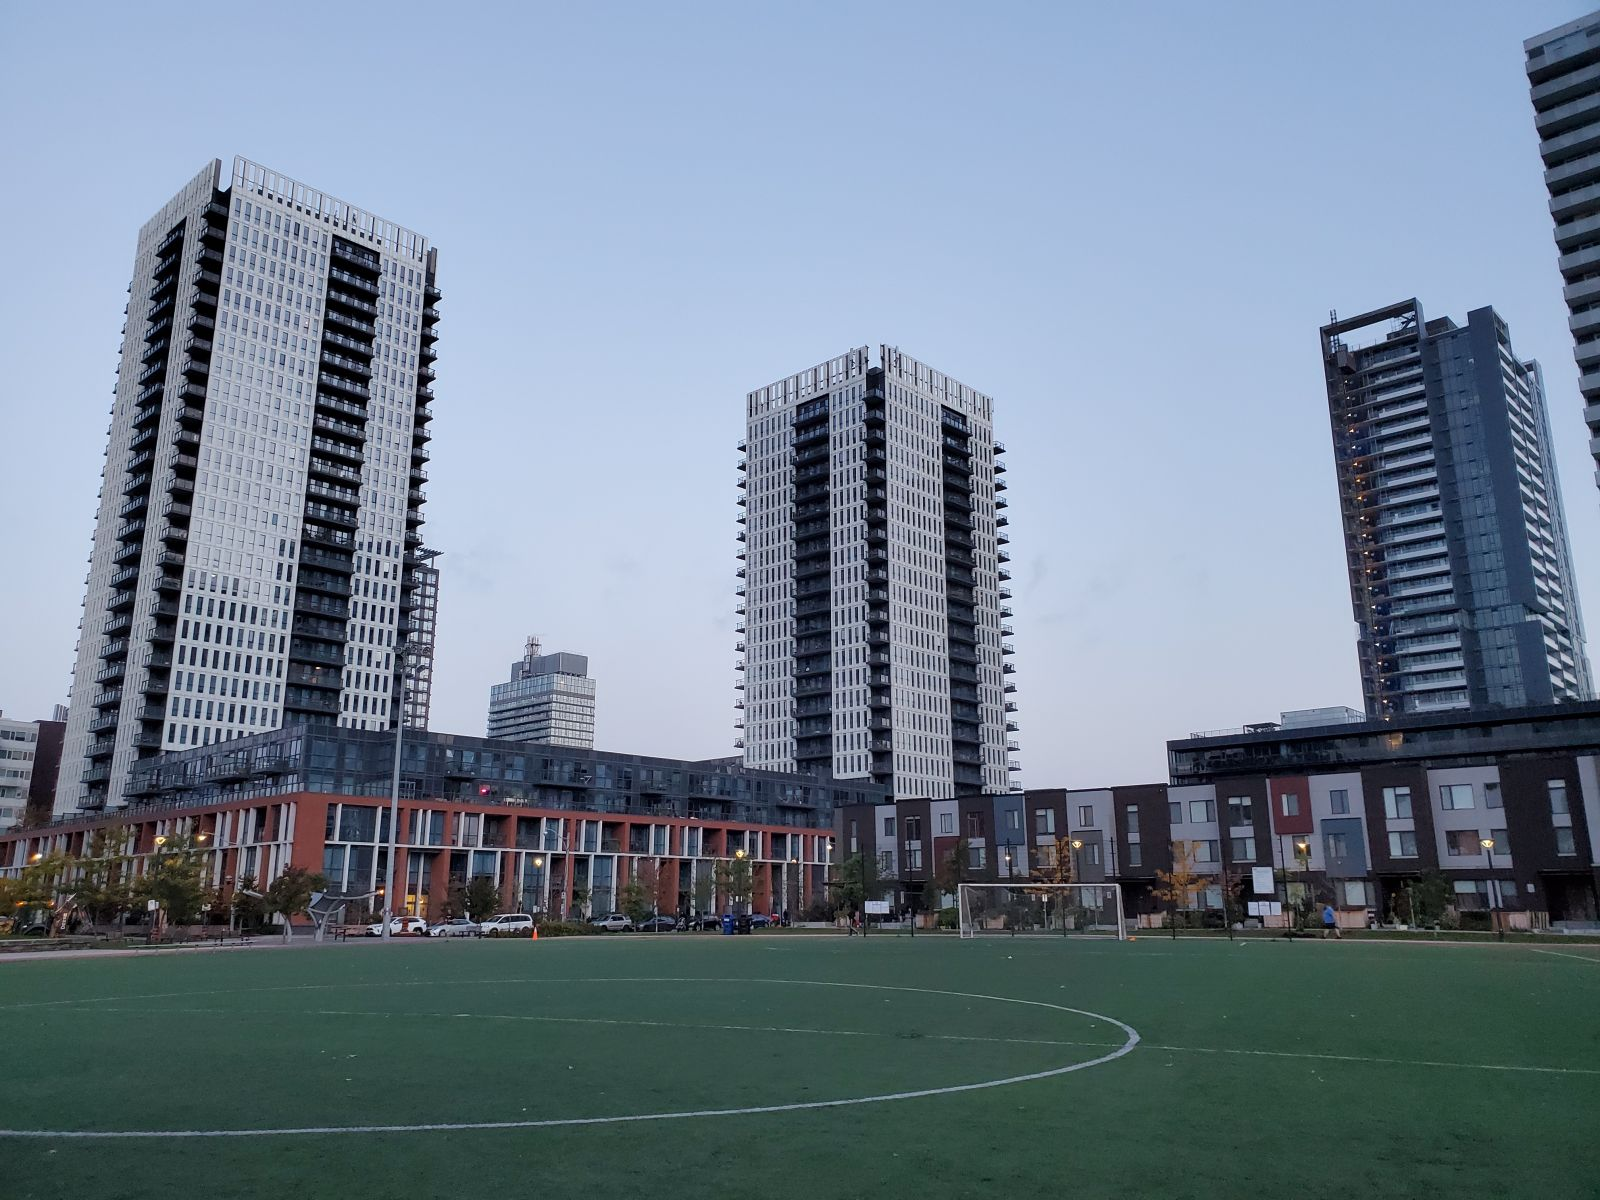 Condo towers and park